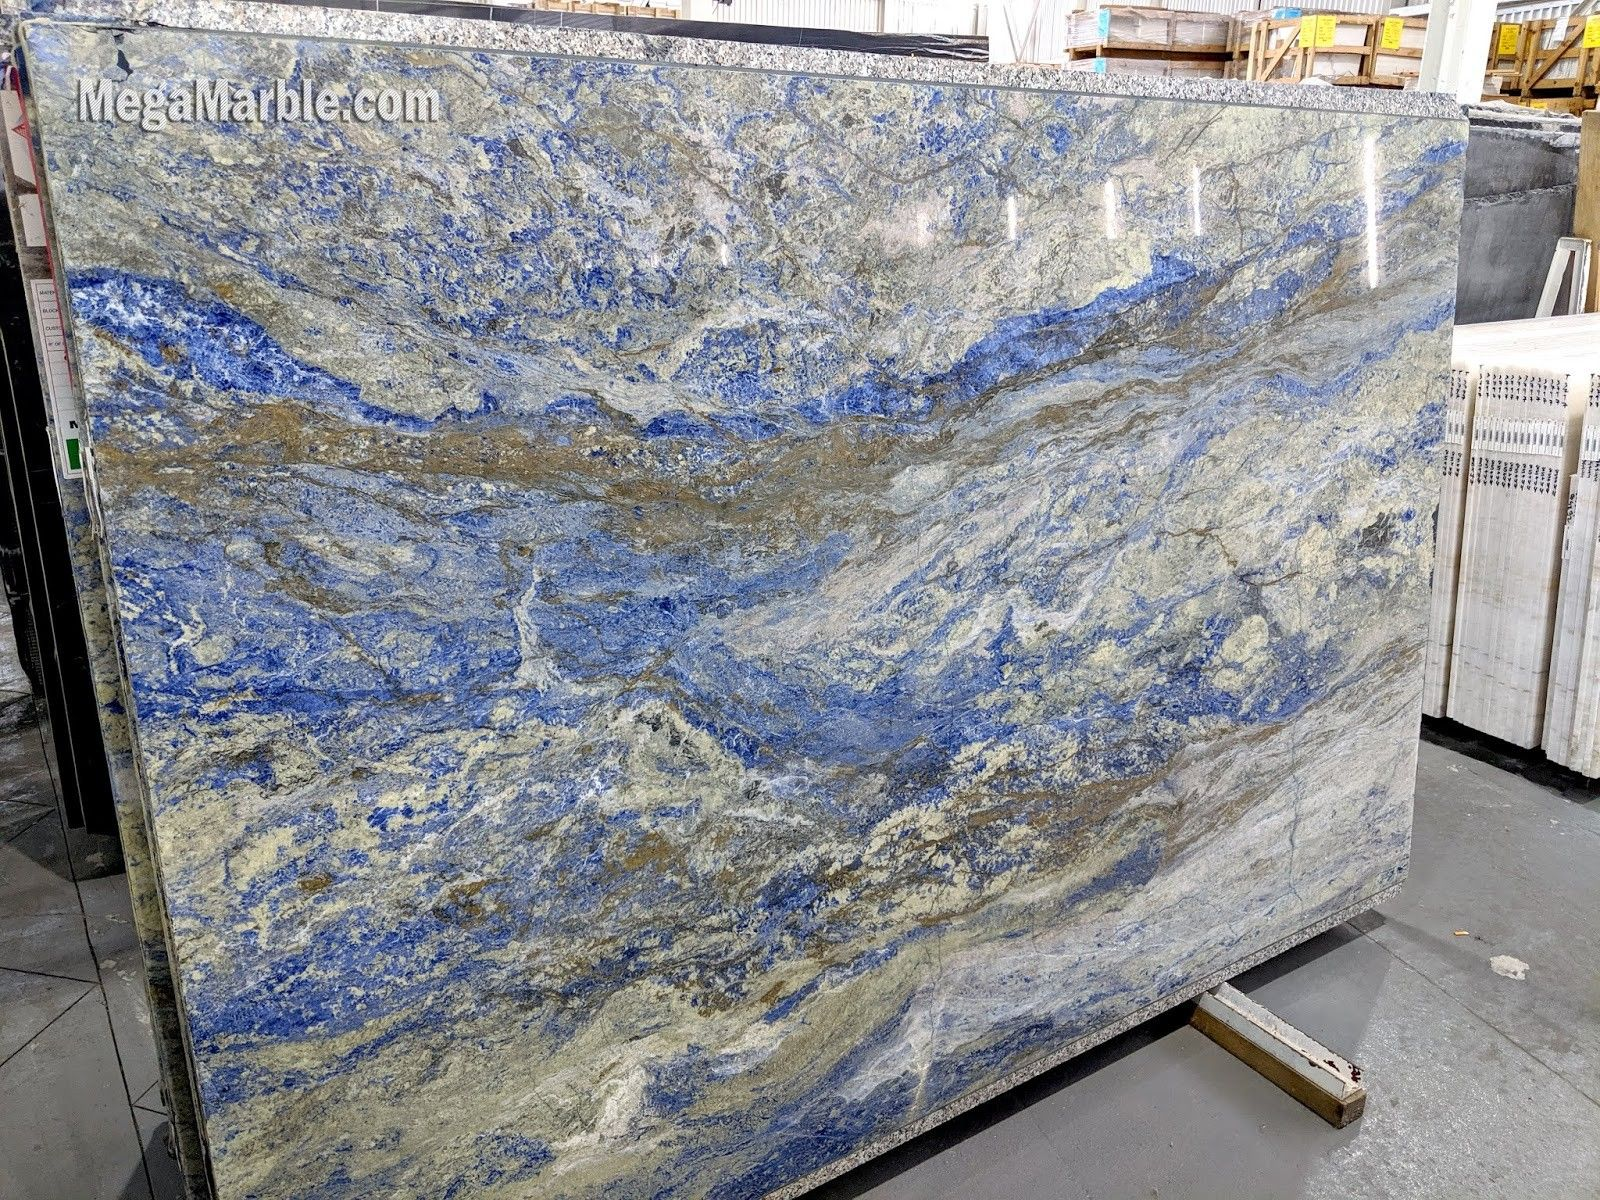 Pin By Diane Casale On Dream House In 2020 Slab Granite Countertops Granite Countertops Countertop Slabs